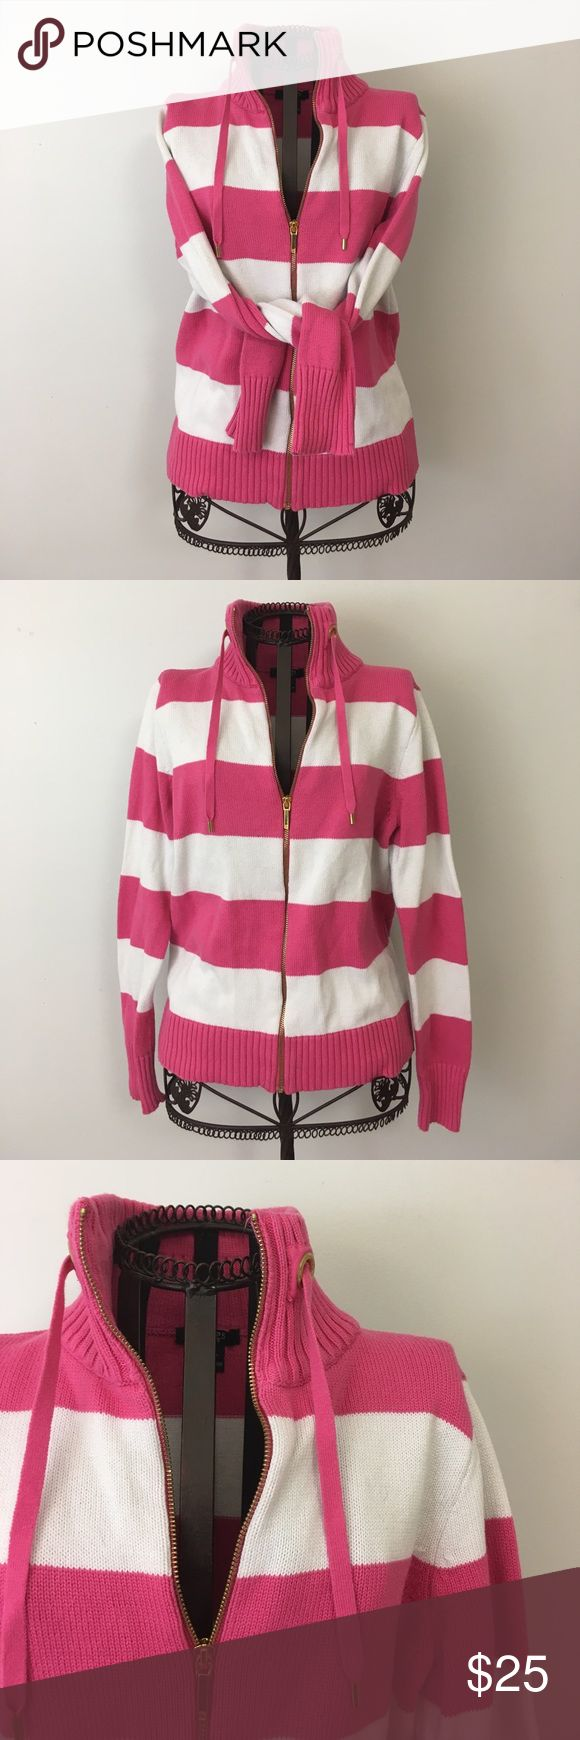 - Chaps - Women's zip up sweater by Chaps. Excellent like new condition. Thick stitching pink and white striped. Gold zipper with drawstrings. 100% Cotton. Chaps Sweaters